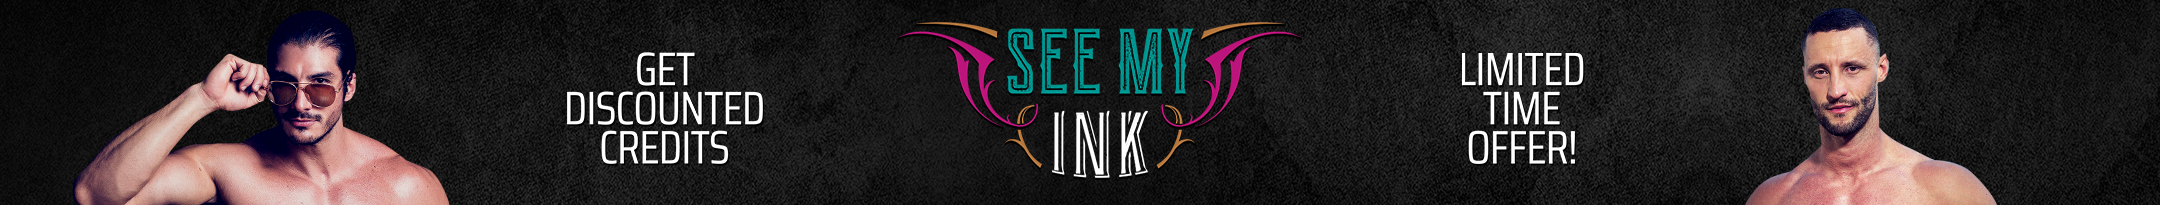 See My Ink Discount Promo